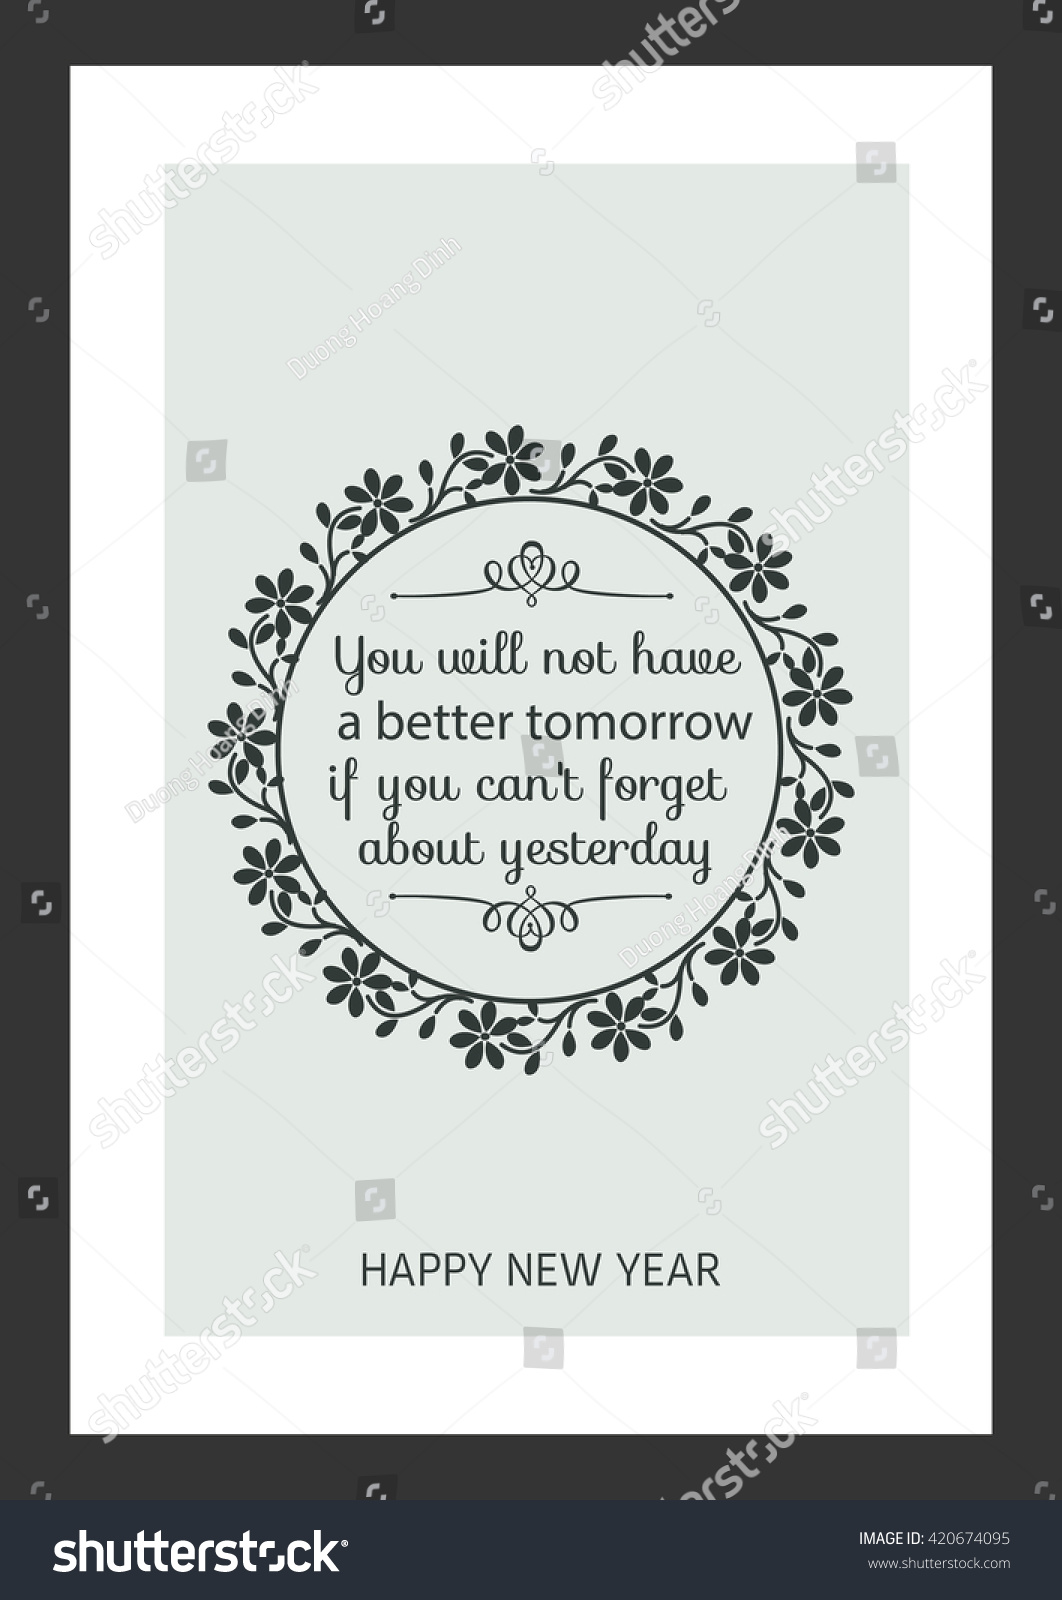 new year quote you will not have a better tomorrow if you can not forgive